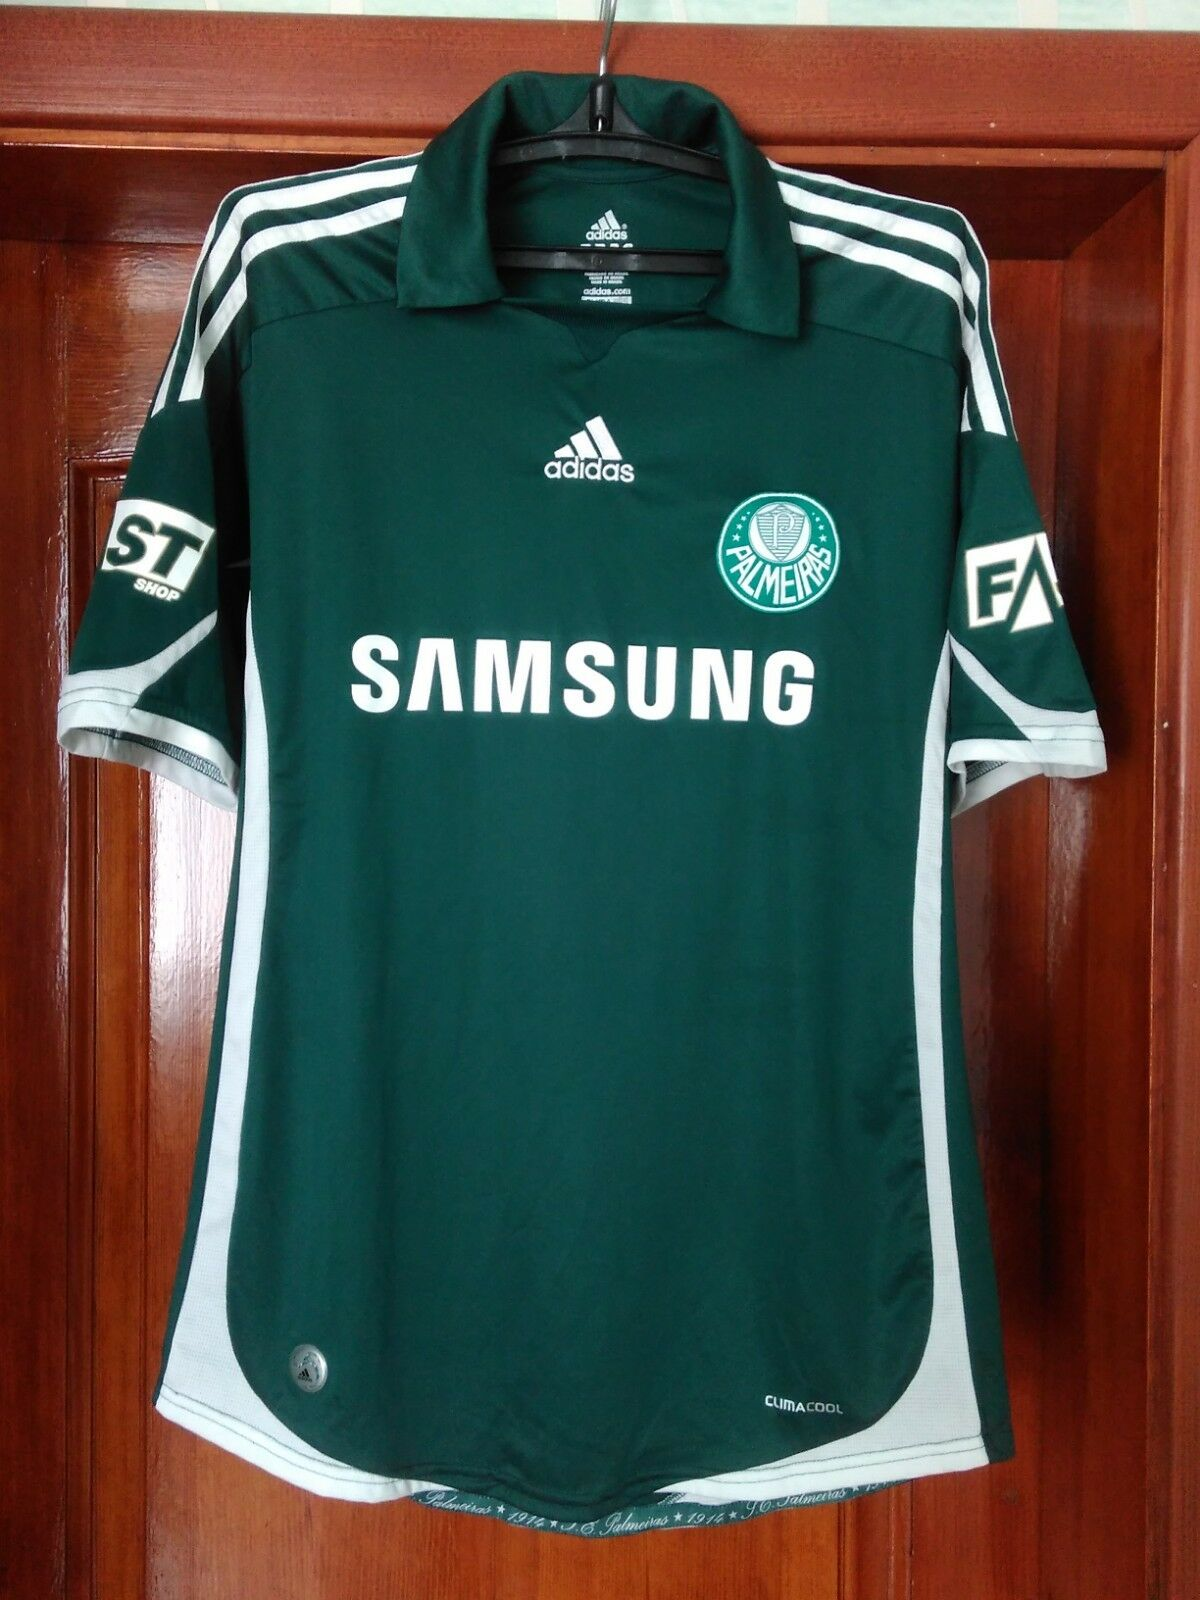 7c1dcc5ce Palmeiras 2009-2010 home football shirt Adidas soccer jersey Keirrison size  L